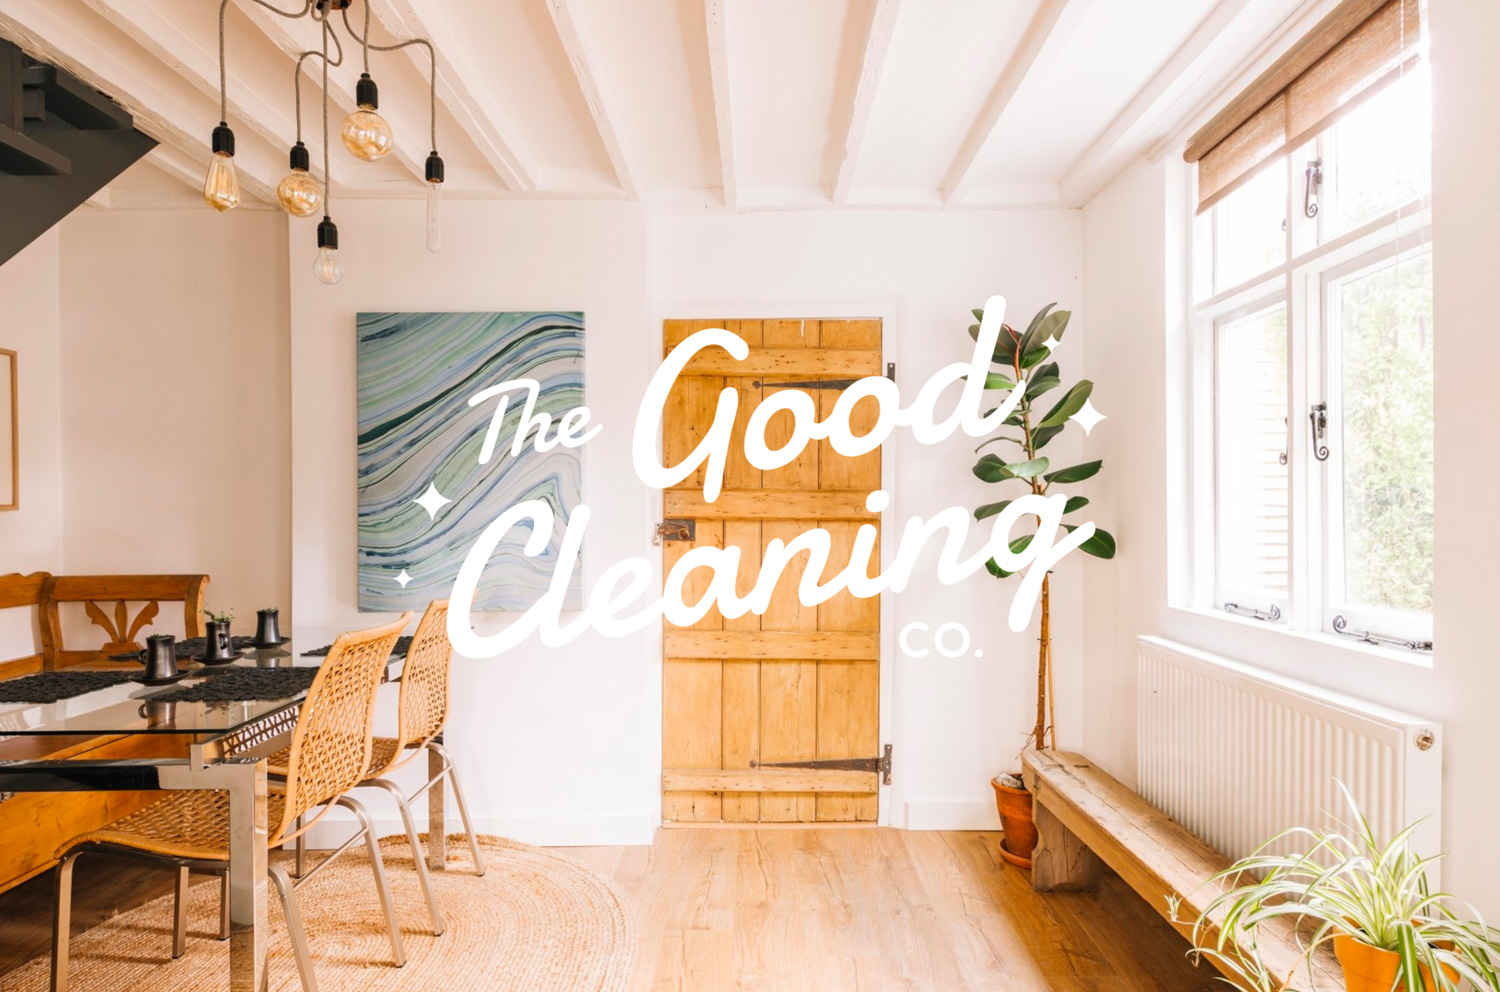 The Good Cleaning Company Logo Design